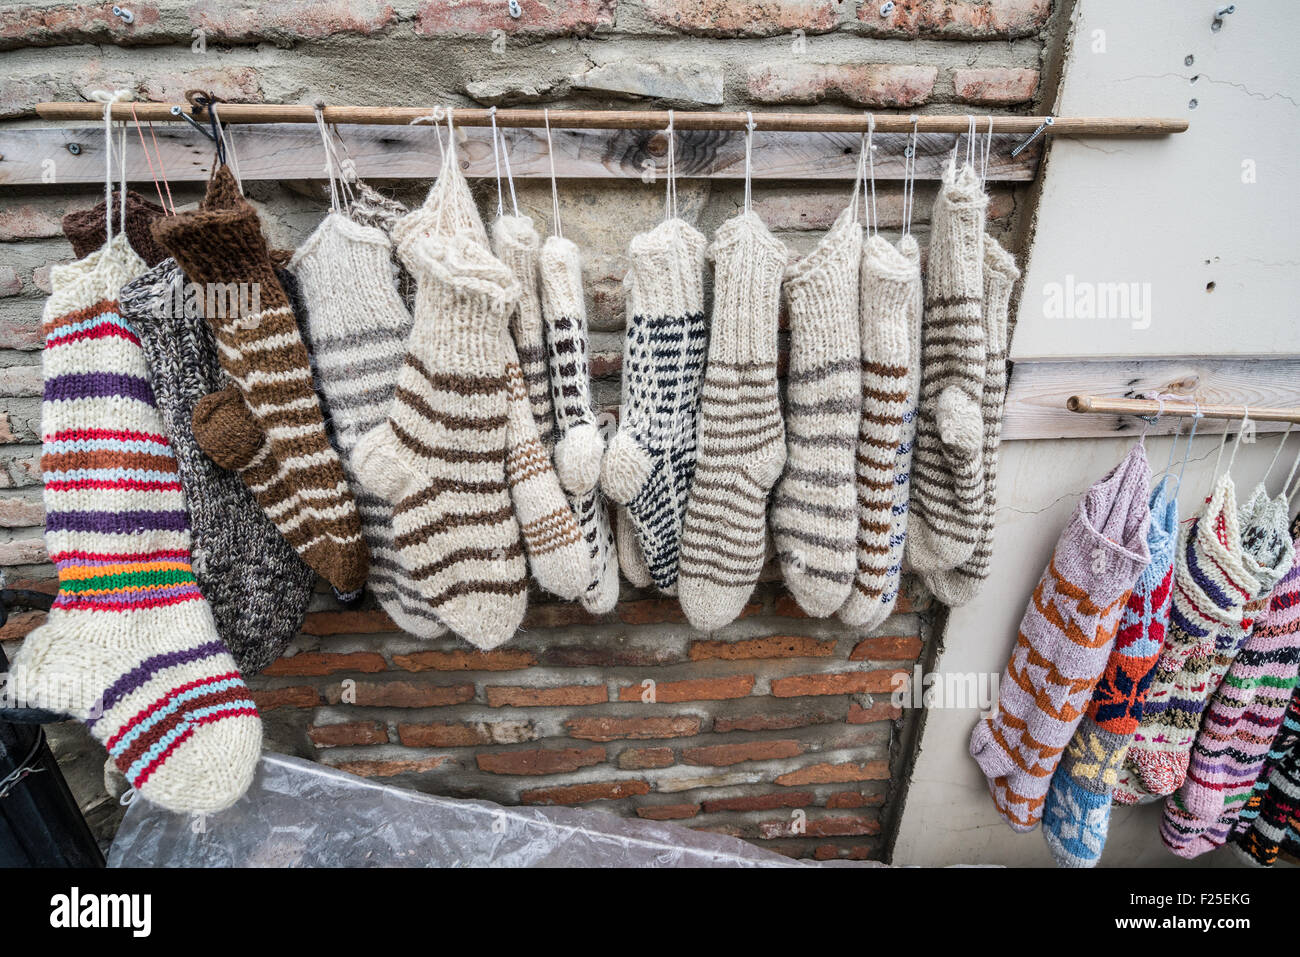 wool socks for sale on souvenir stand in Sighnaghi, Kakheti region of Georgia - Stock Image